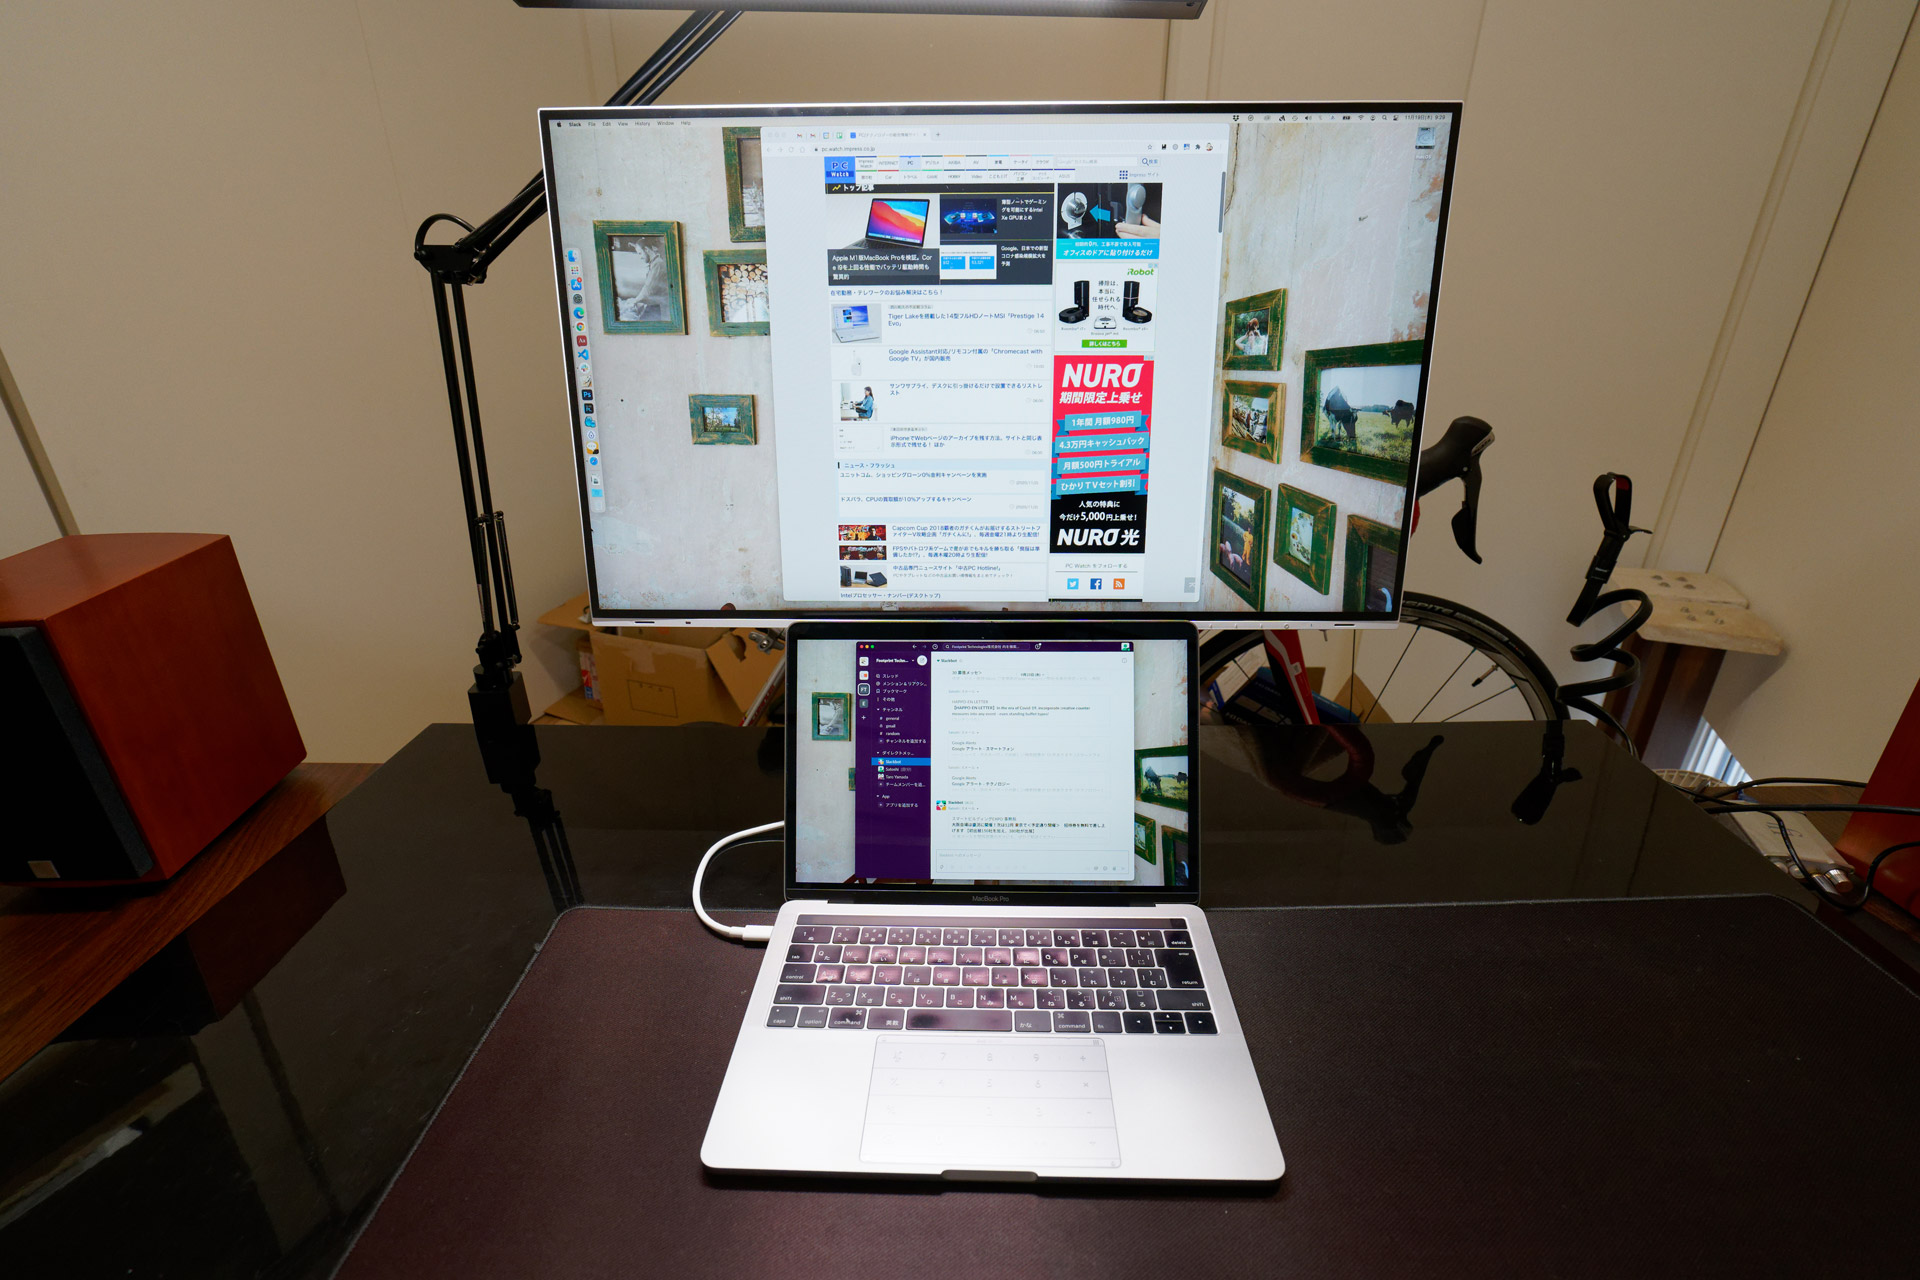 The stand's freely adjustable height makes it possible to place the 13-inch MacBook Pro underneath.